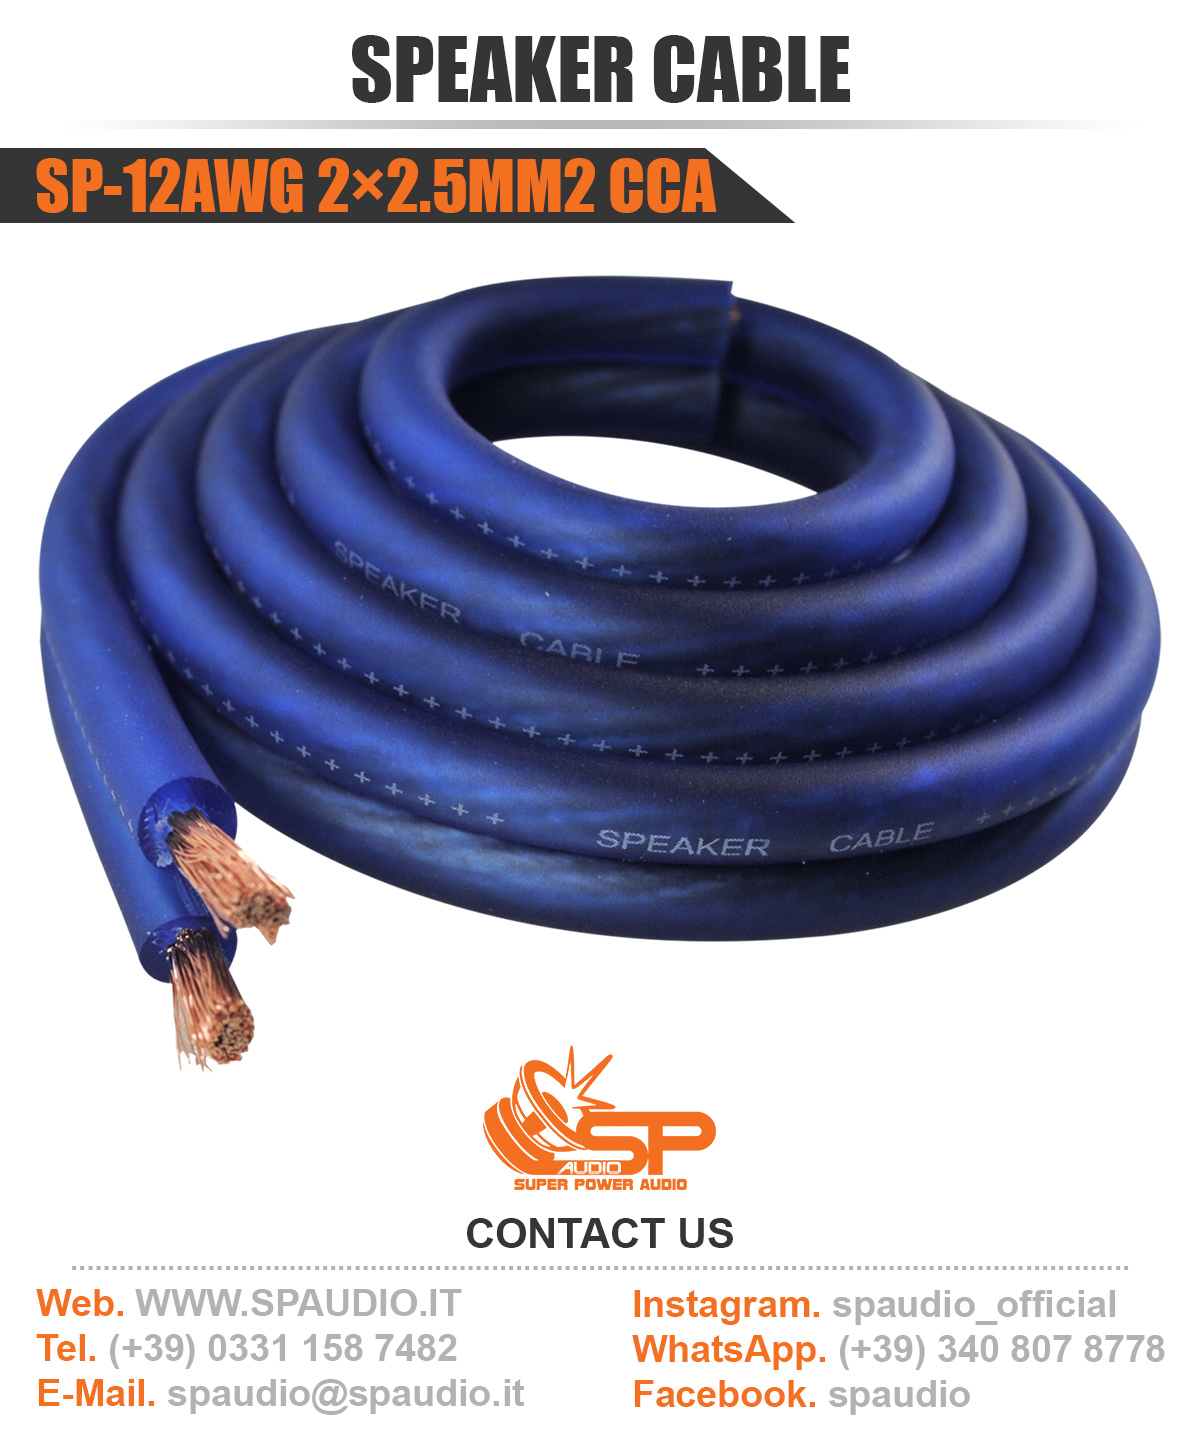 SP-12AWG 2X2.5MM2 CCA BLUE 2020